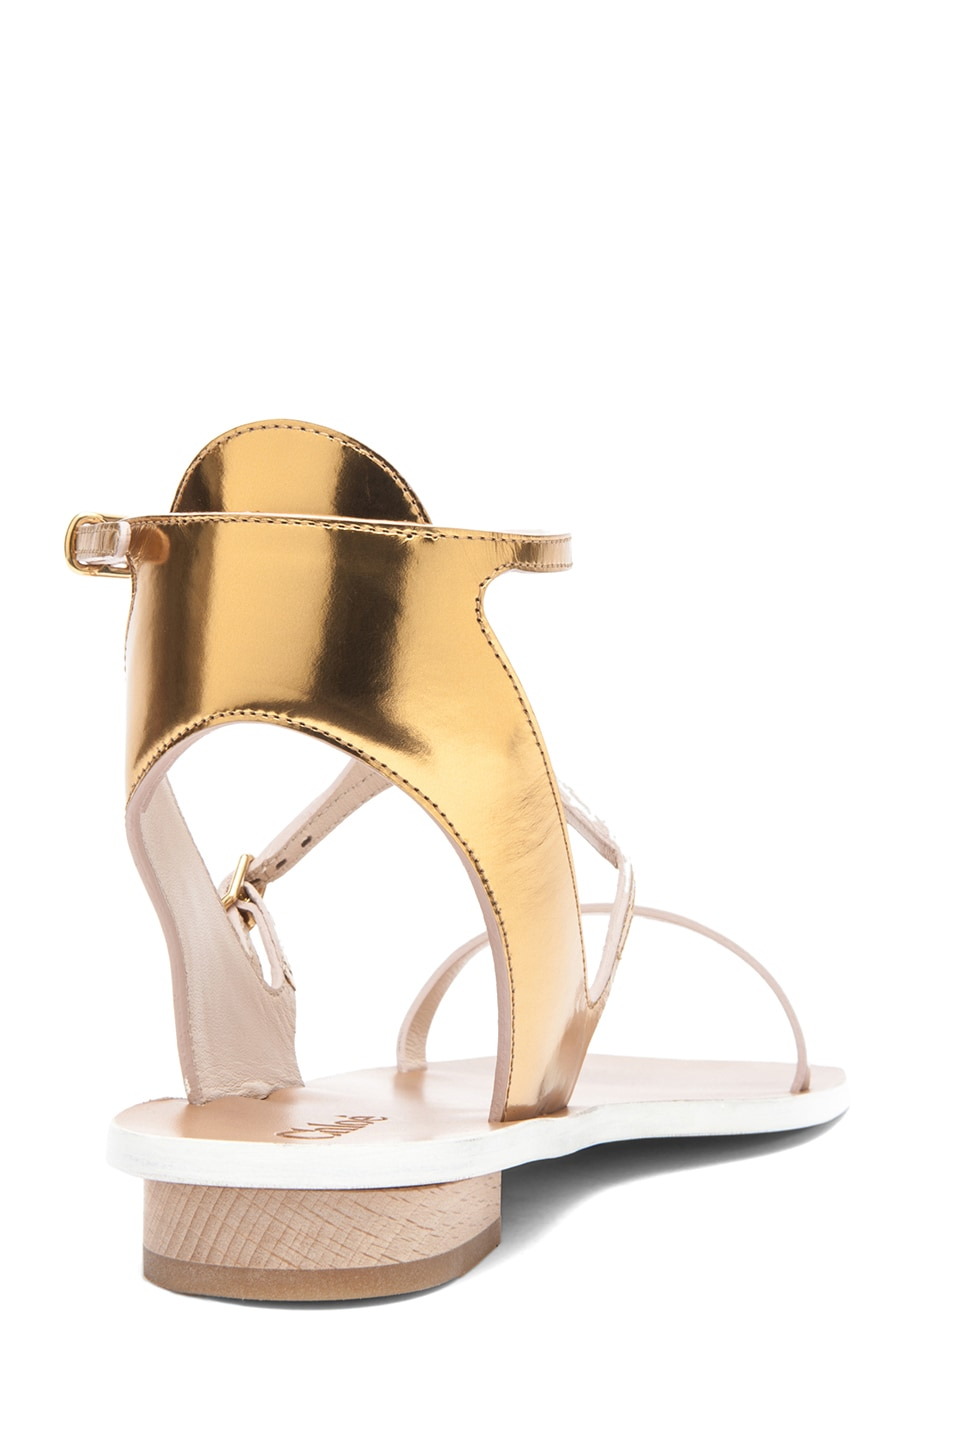 Image 3 of Chloe Metallic Leather Runway Sandals in Gold